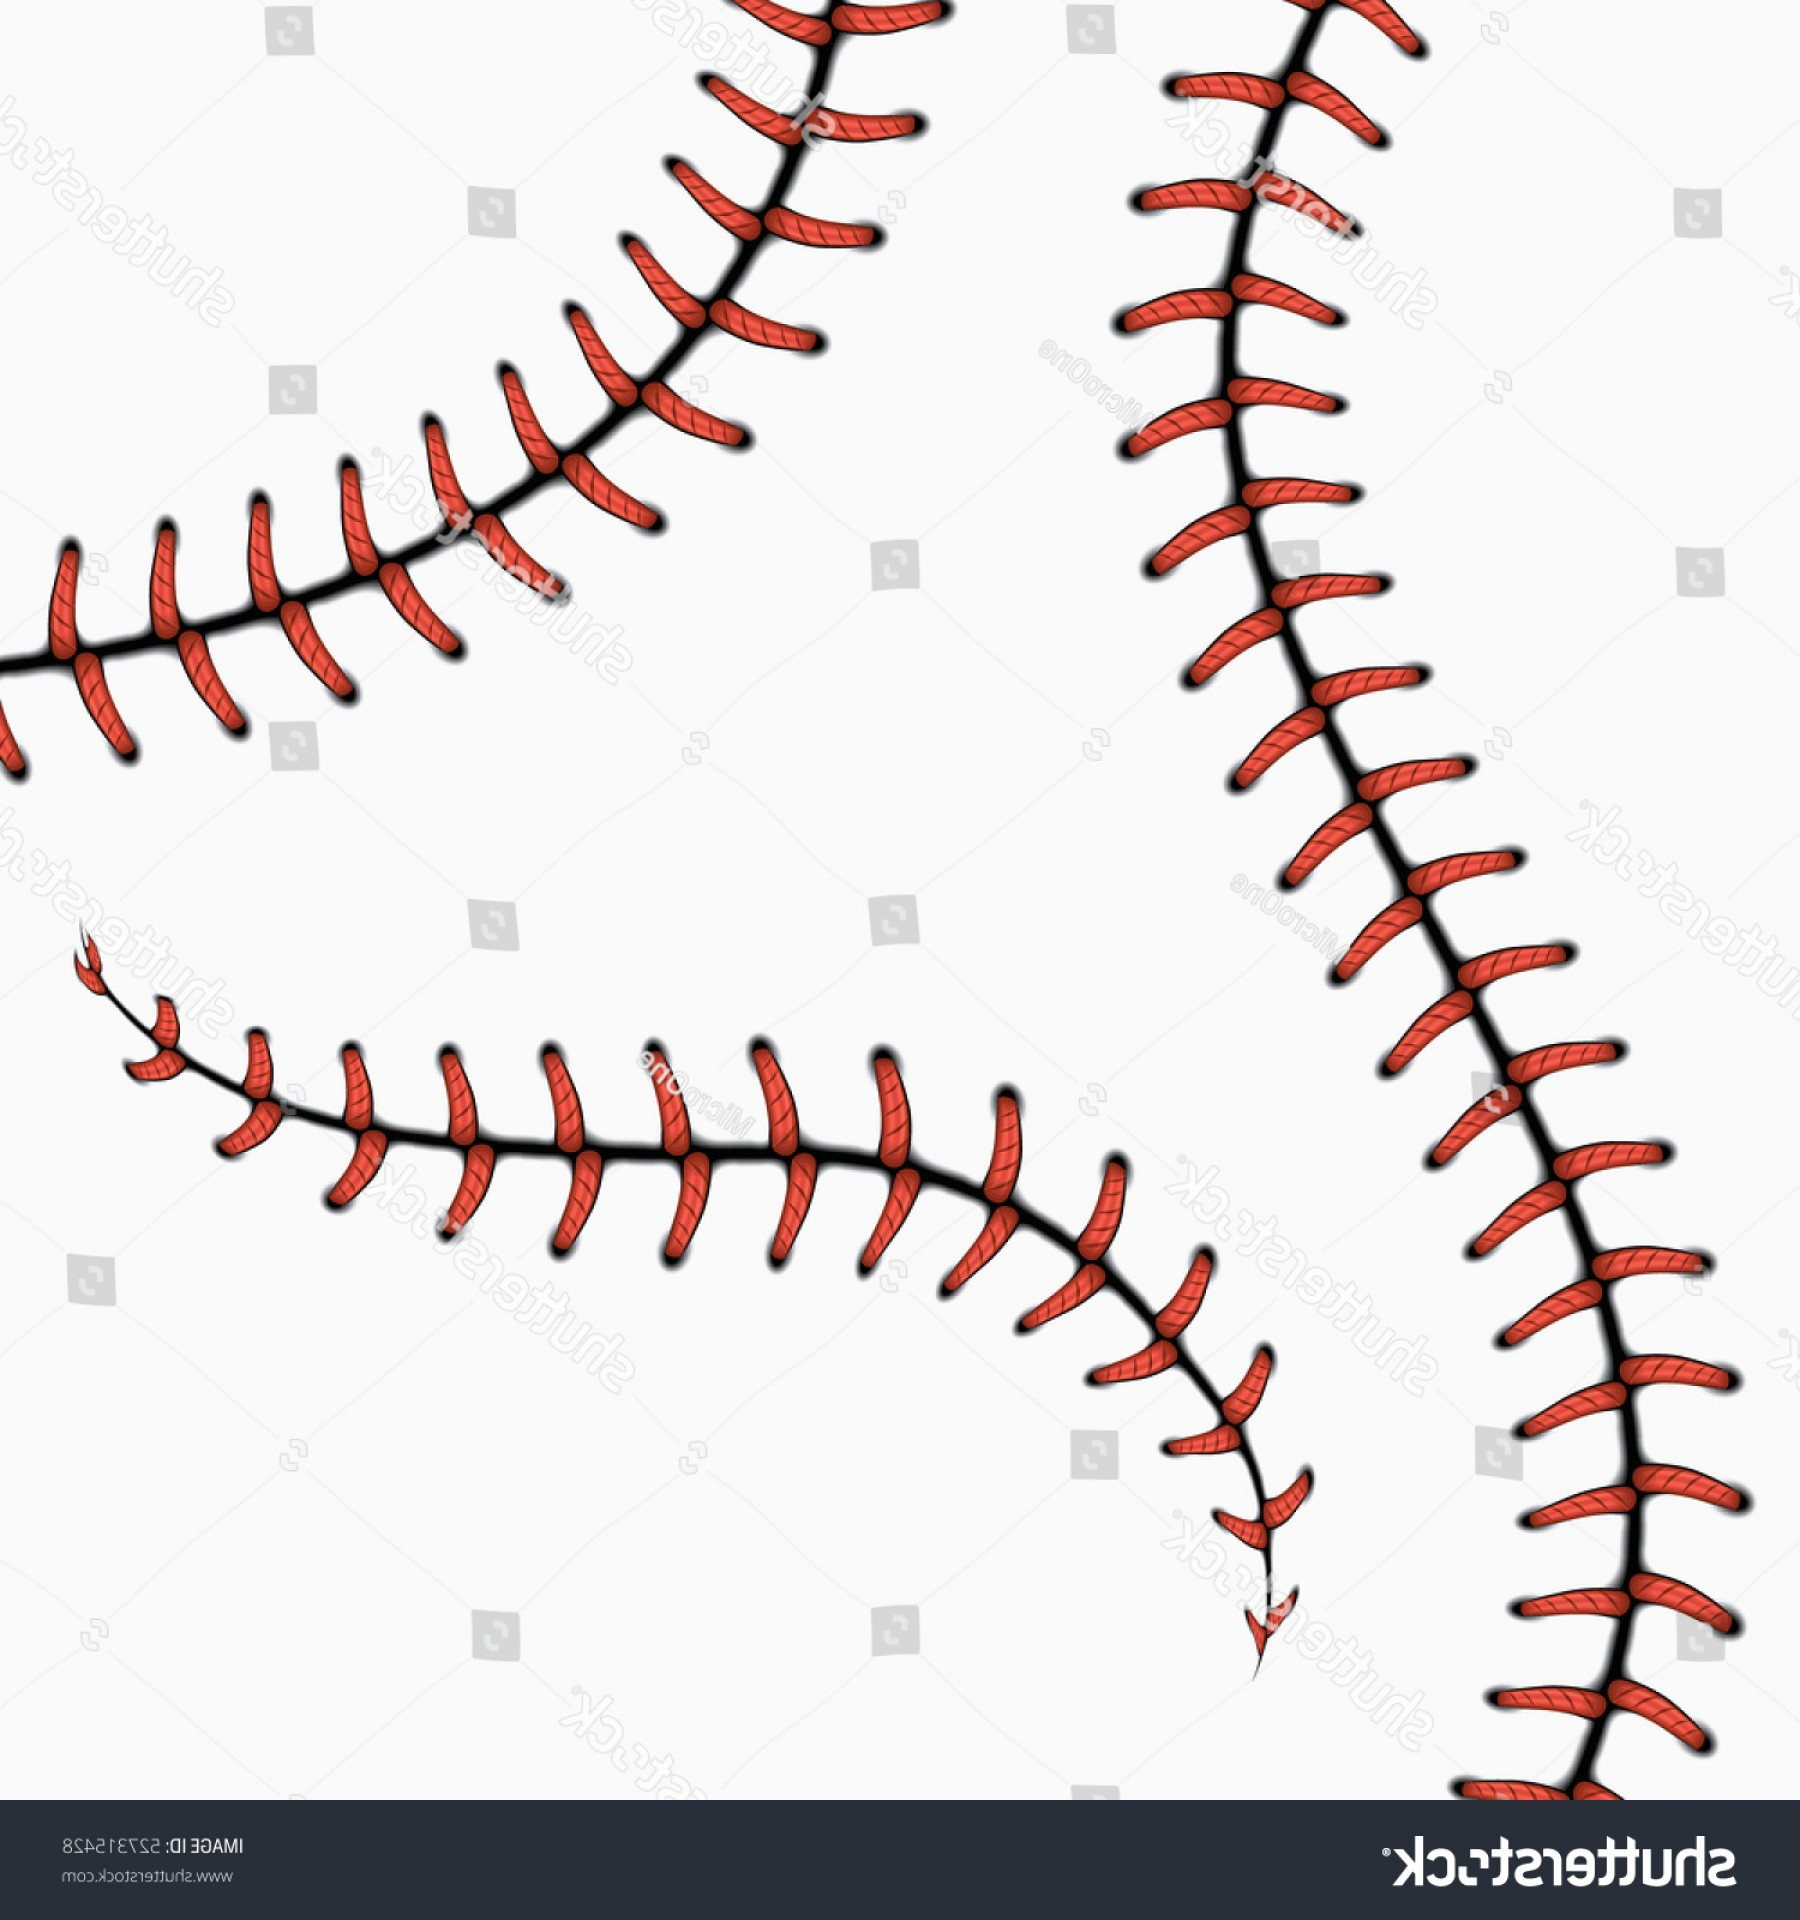 Basketball Seams Vector Clip Art: Baseball Stitches Softball Laces Isolated On